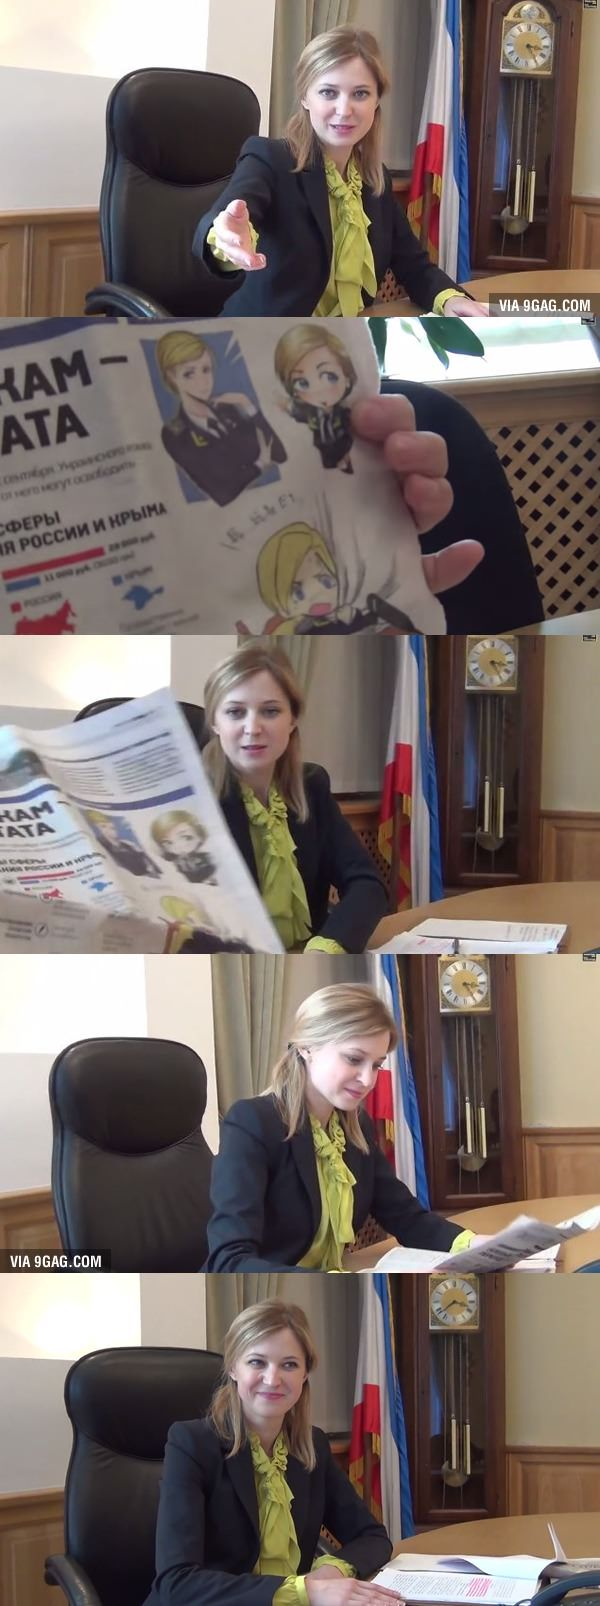 Natalia Poklonskaya reacts to fanart